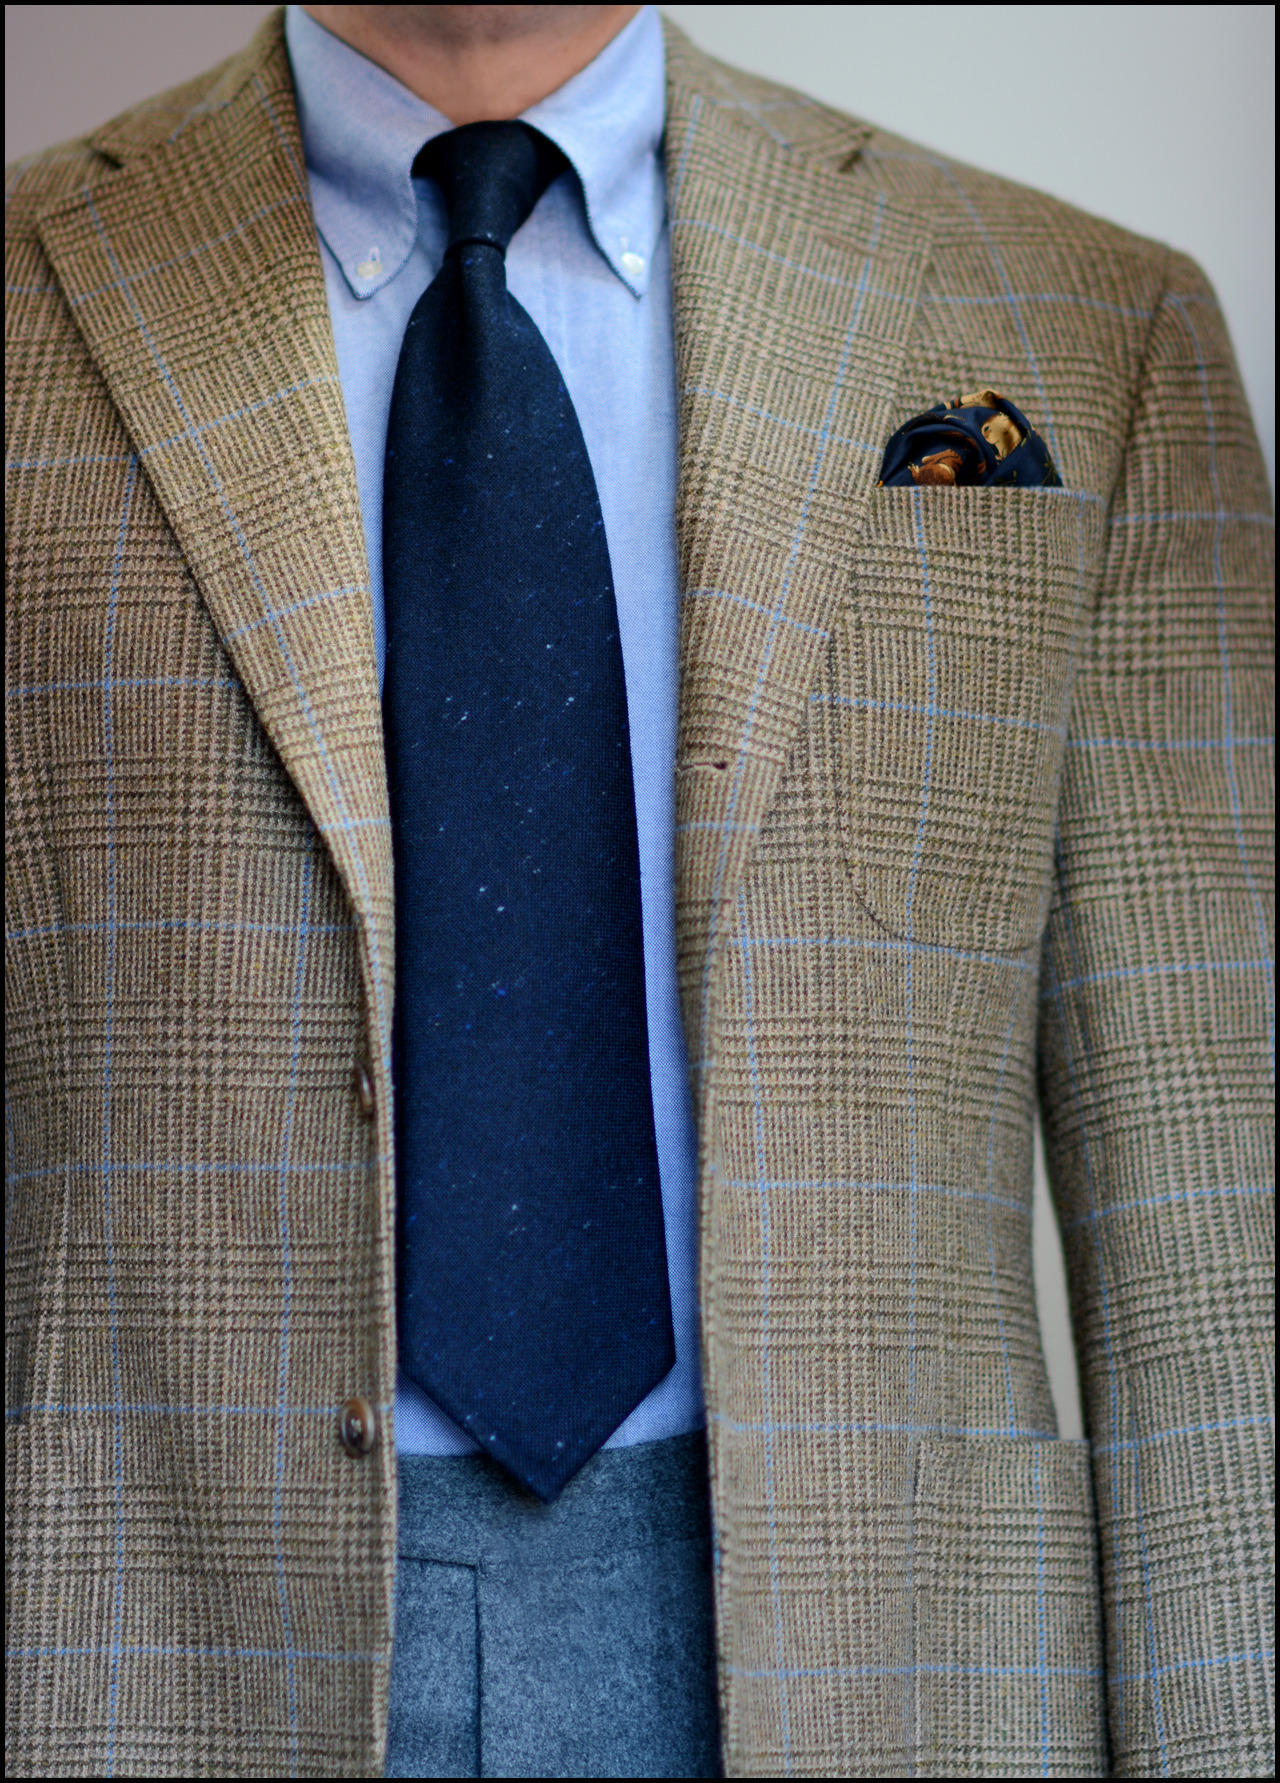 Donegal Tweed Ties